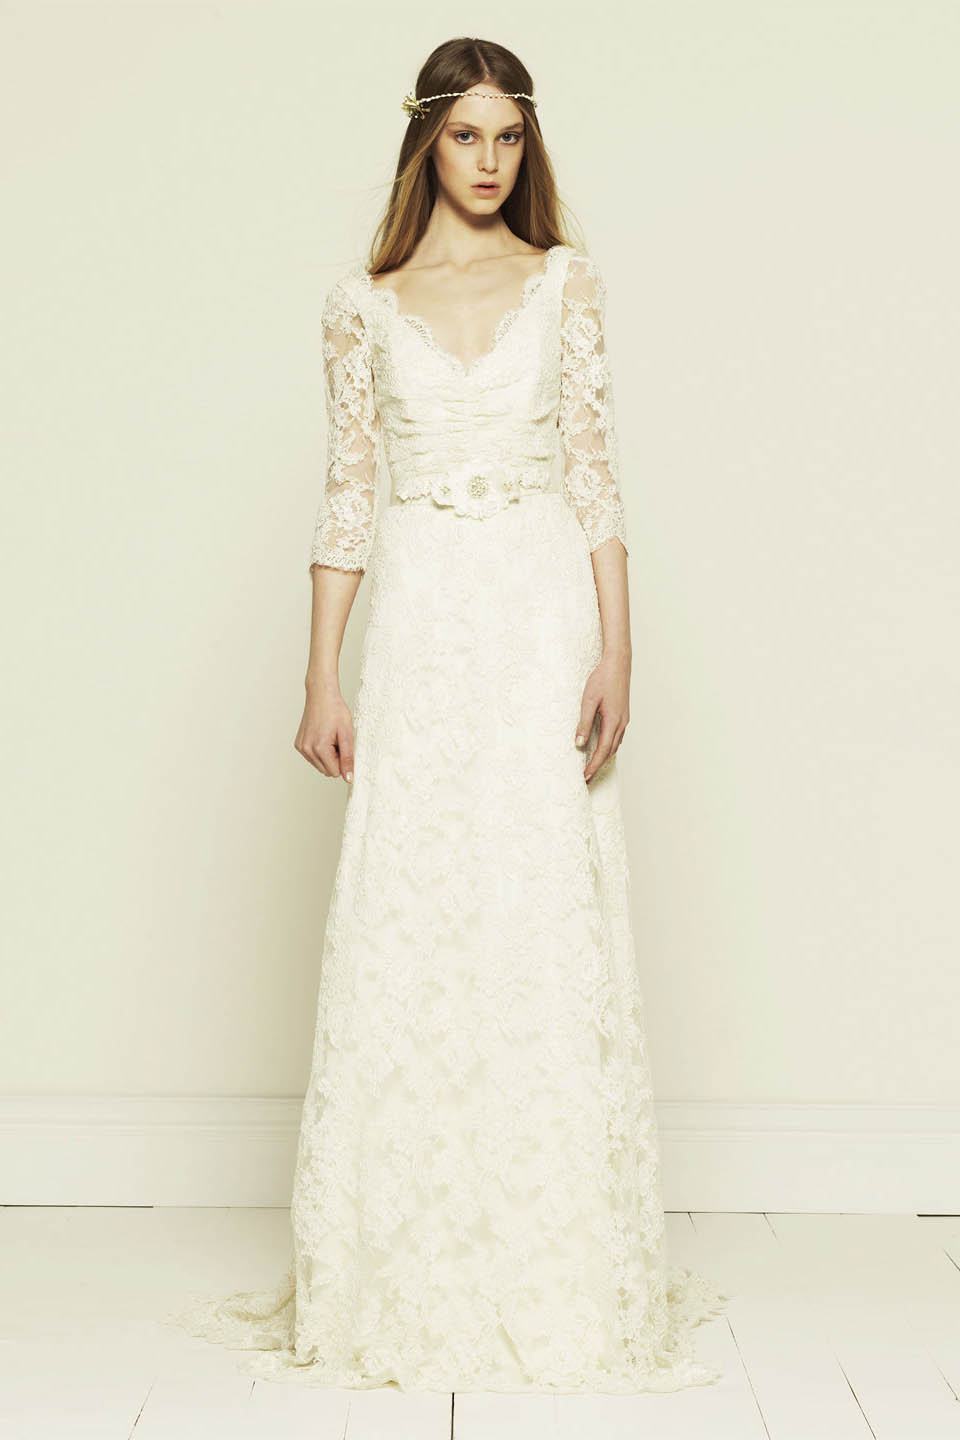 Long lace dress dressed up girl for Long sleeve white lace wedding dress